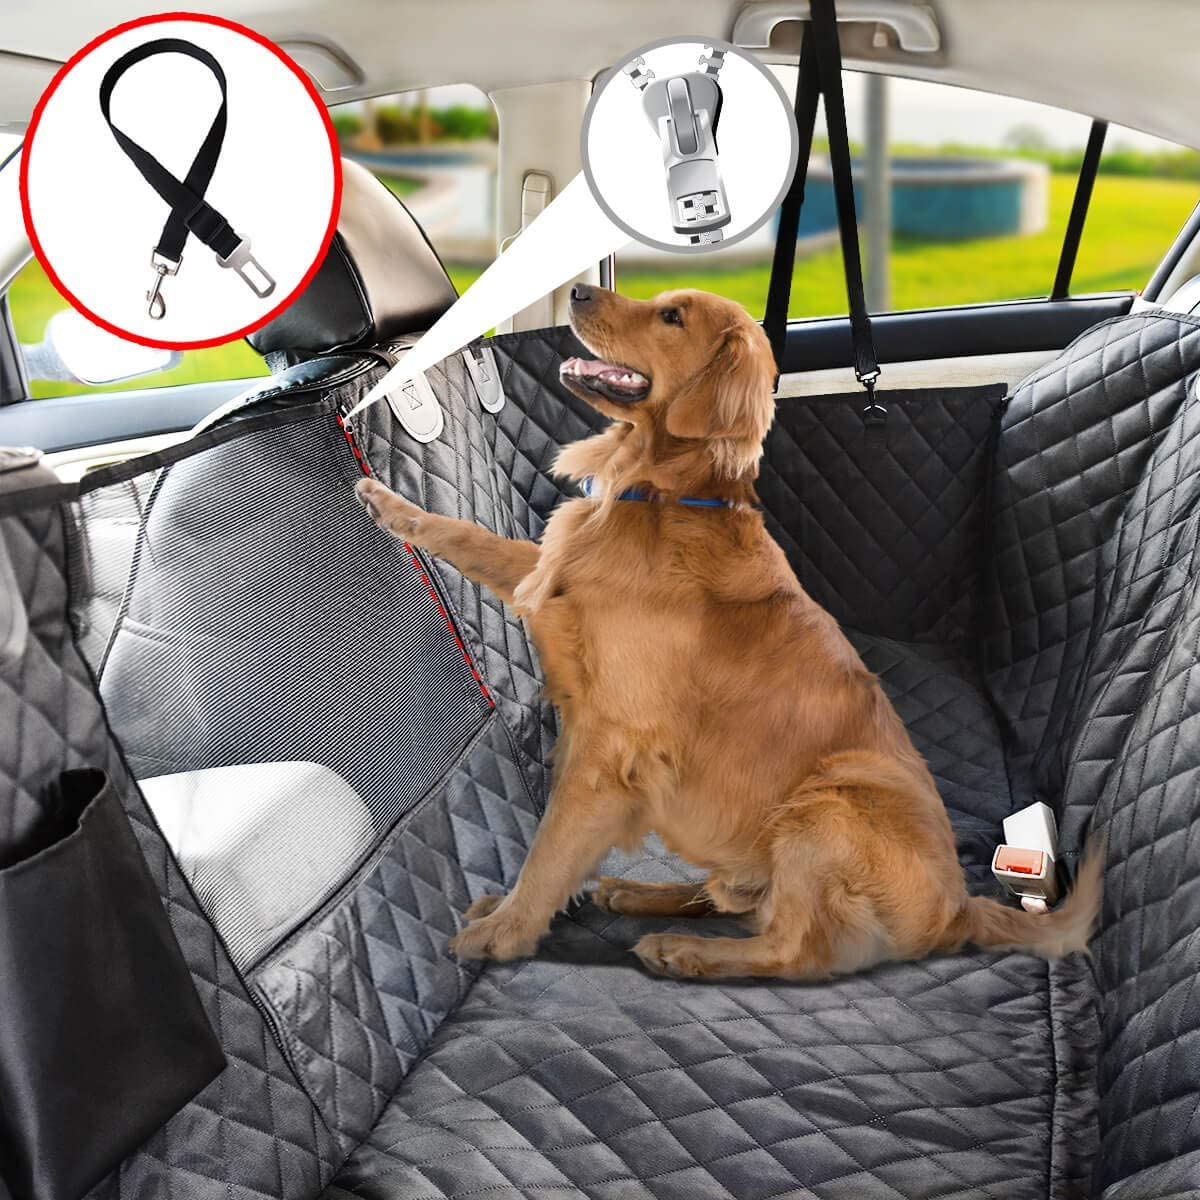 Best Car Hammock With Full Mesh Visibility Window - VAILGE Waterproof Dog Car Seat Cover via Amazon